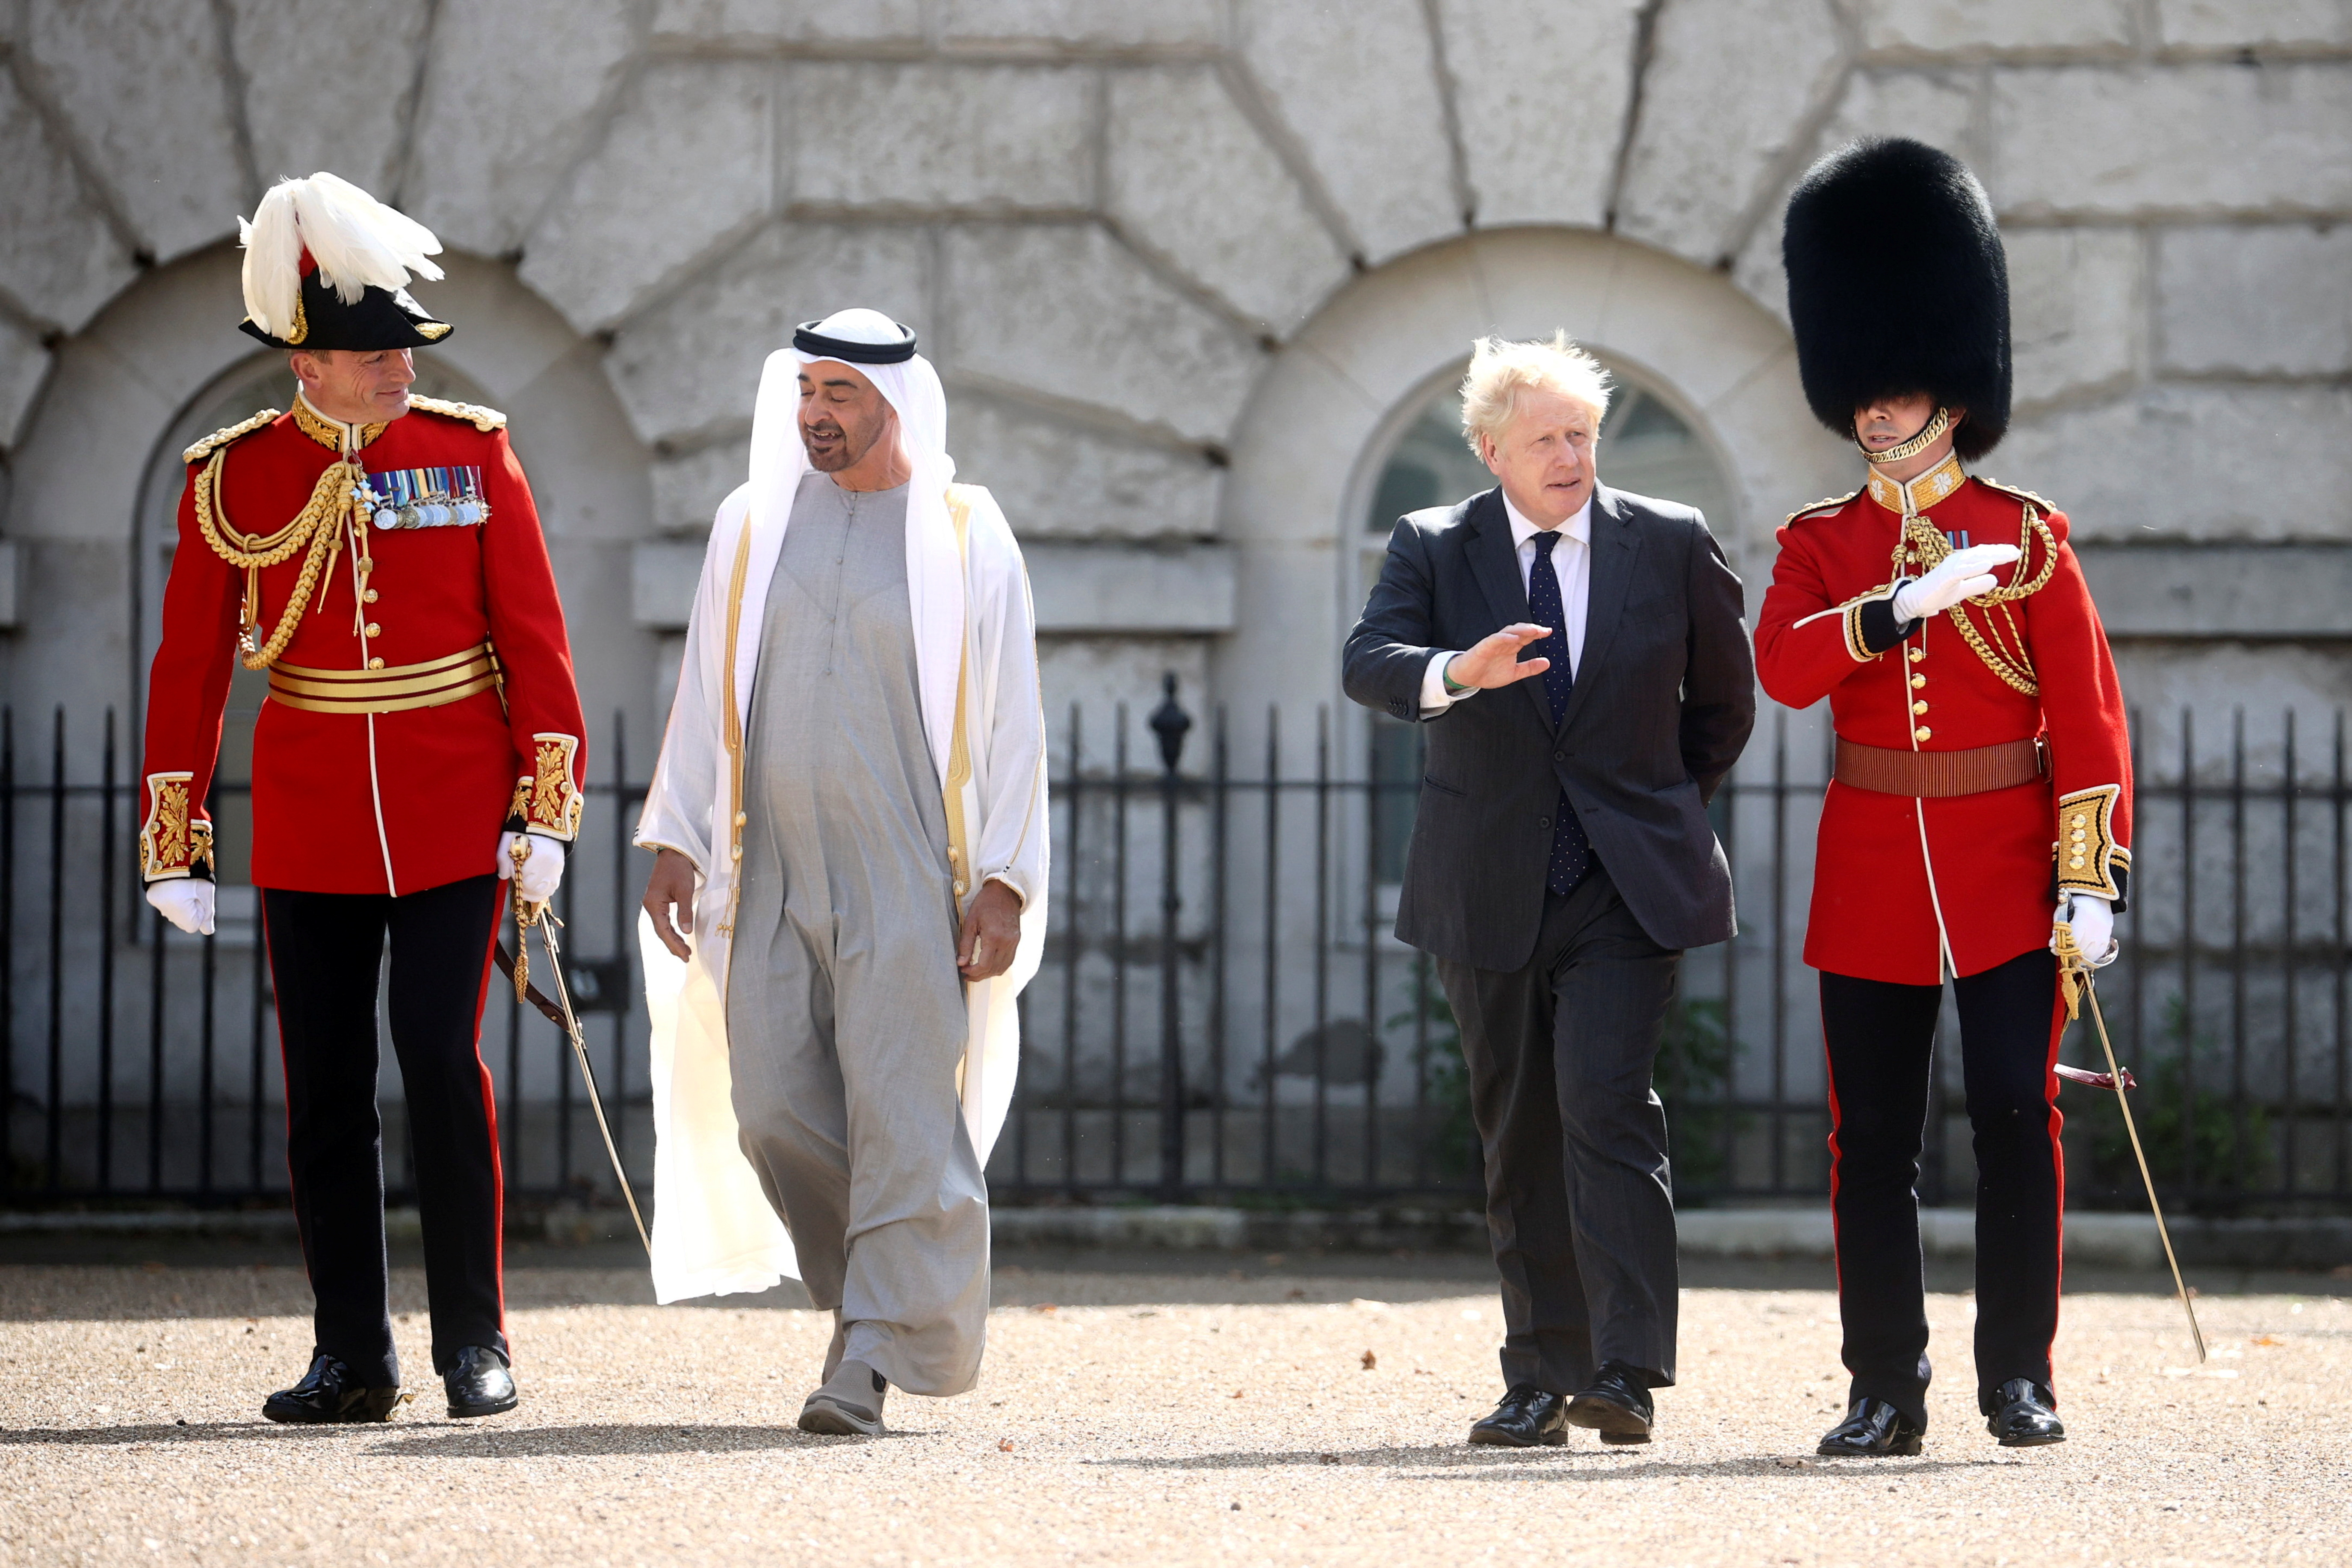 Britain's Prime Minister Boris Johnson and Abu Dhabi's Crown Prince Sheikh Mohammed bin Zayed al-Nahyan inspect the Guard of Honour in London, Britain, September 16, 2021. REUTERS/Hannah McKay